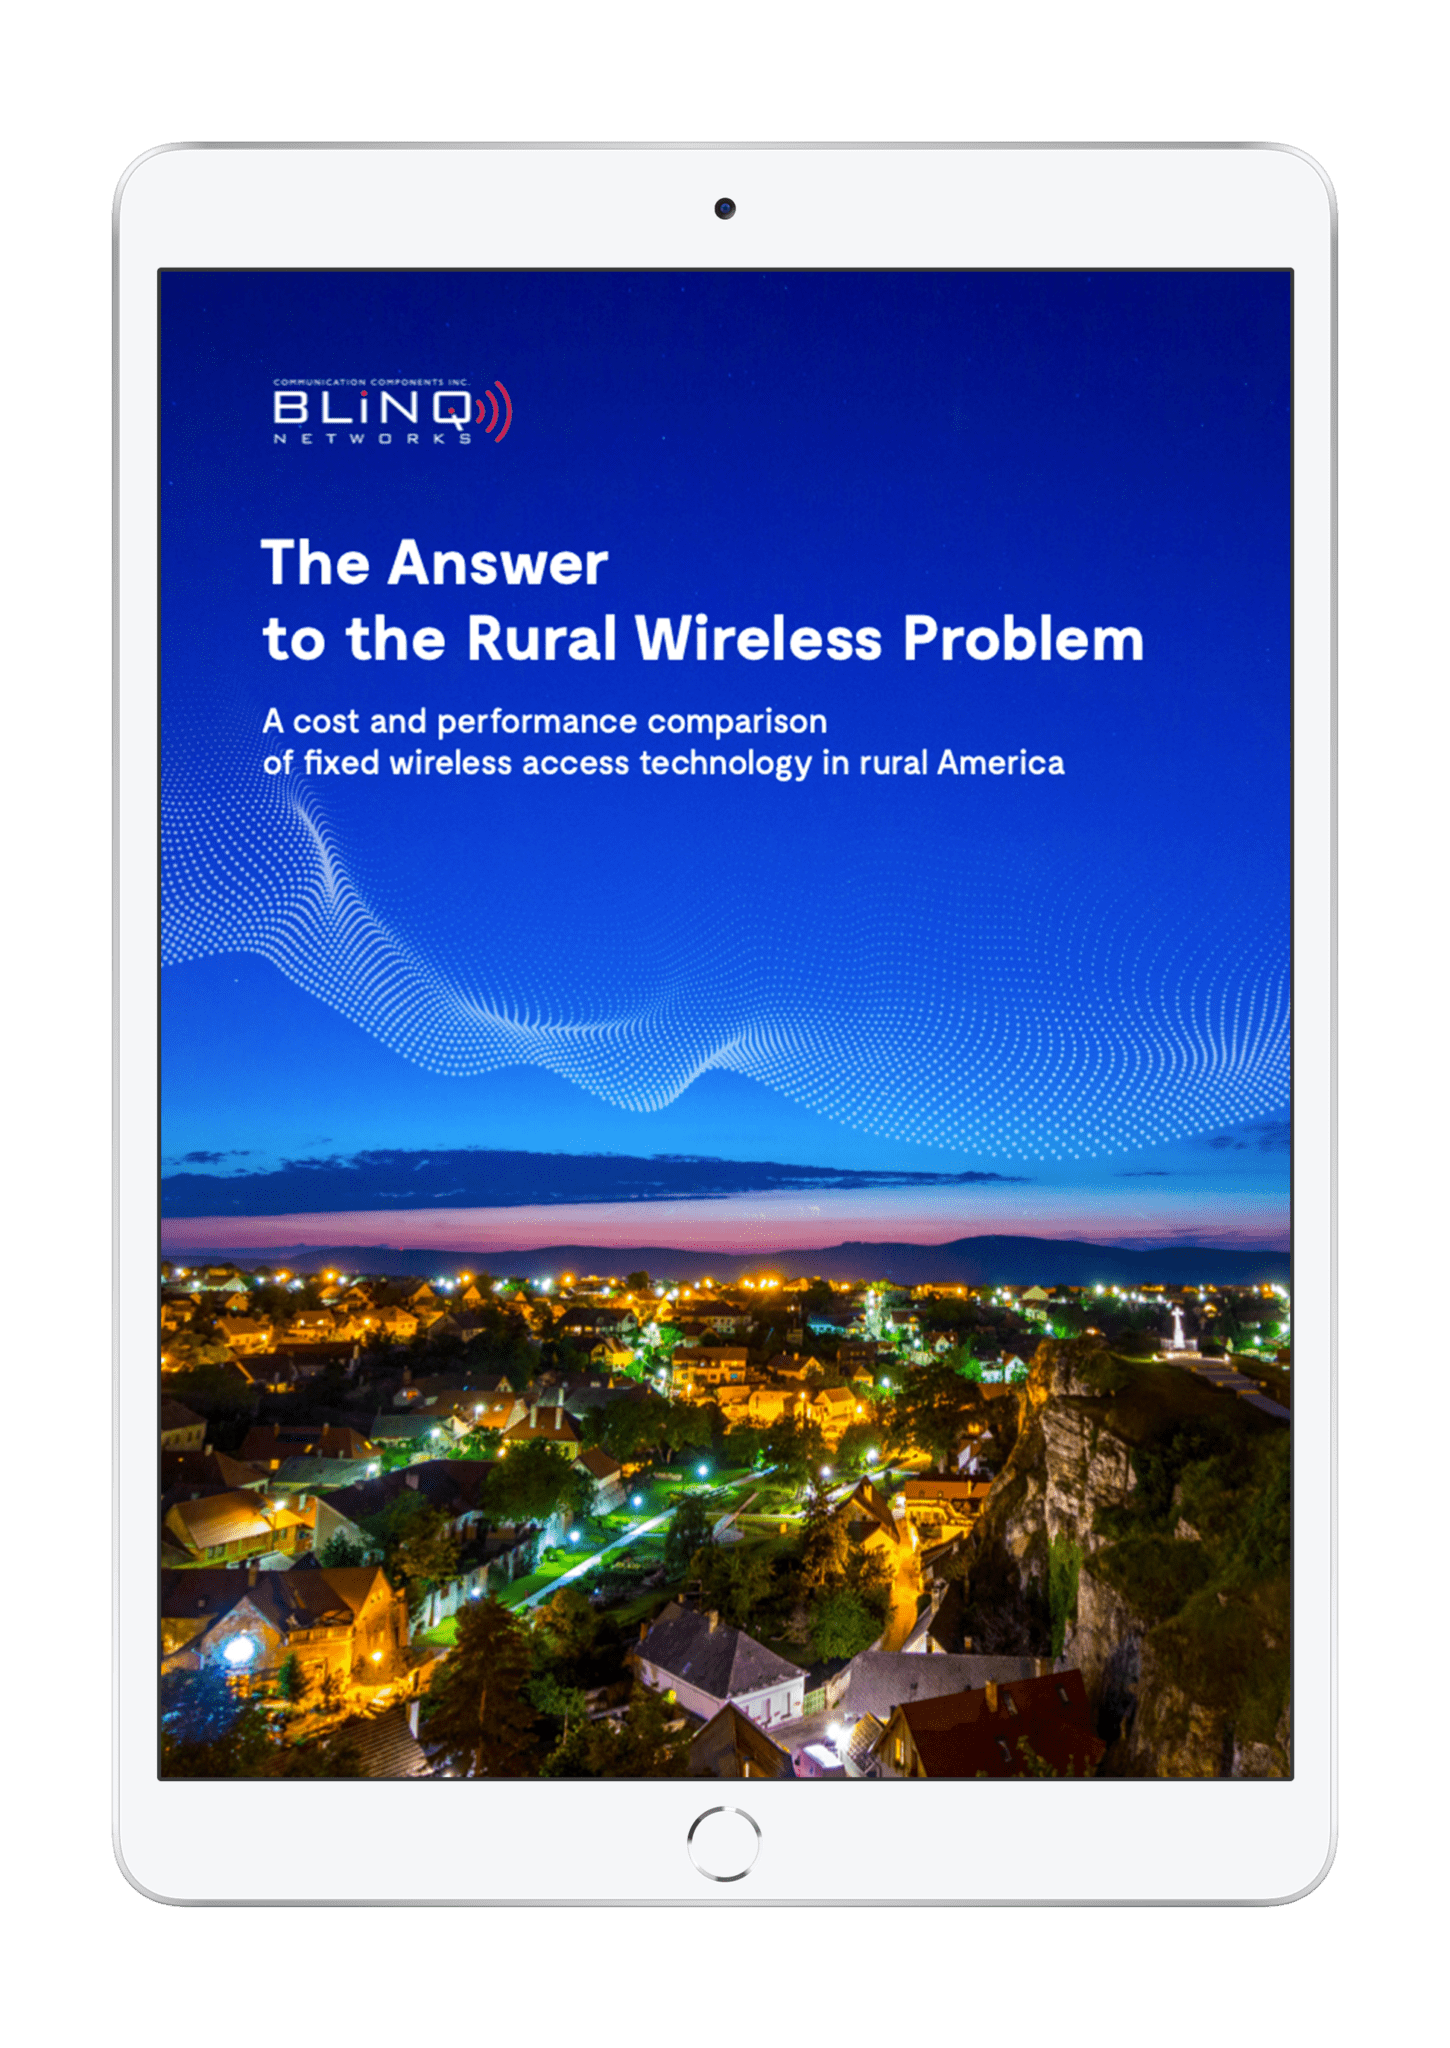 Bringing wireless connectivity to rural America: Case studies on rural wireless challenges